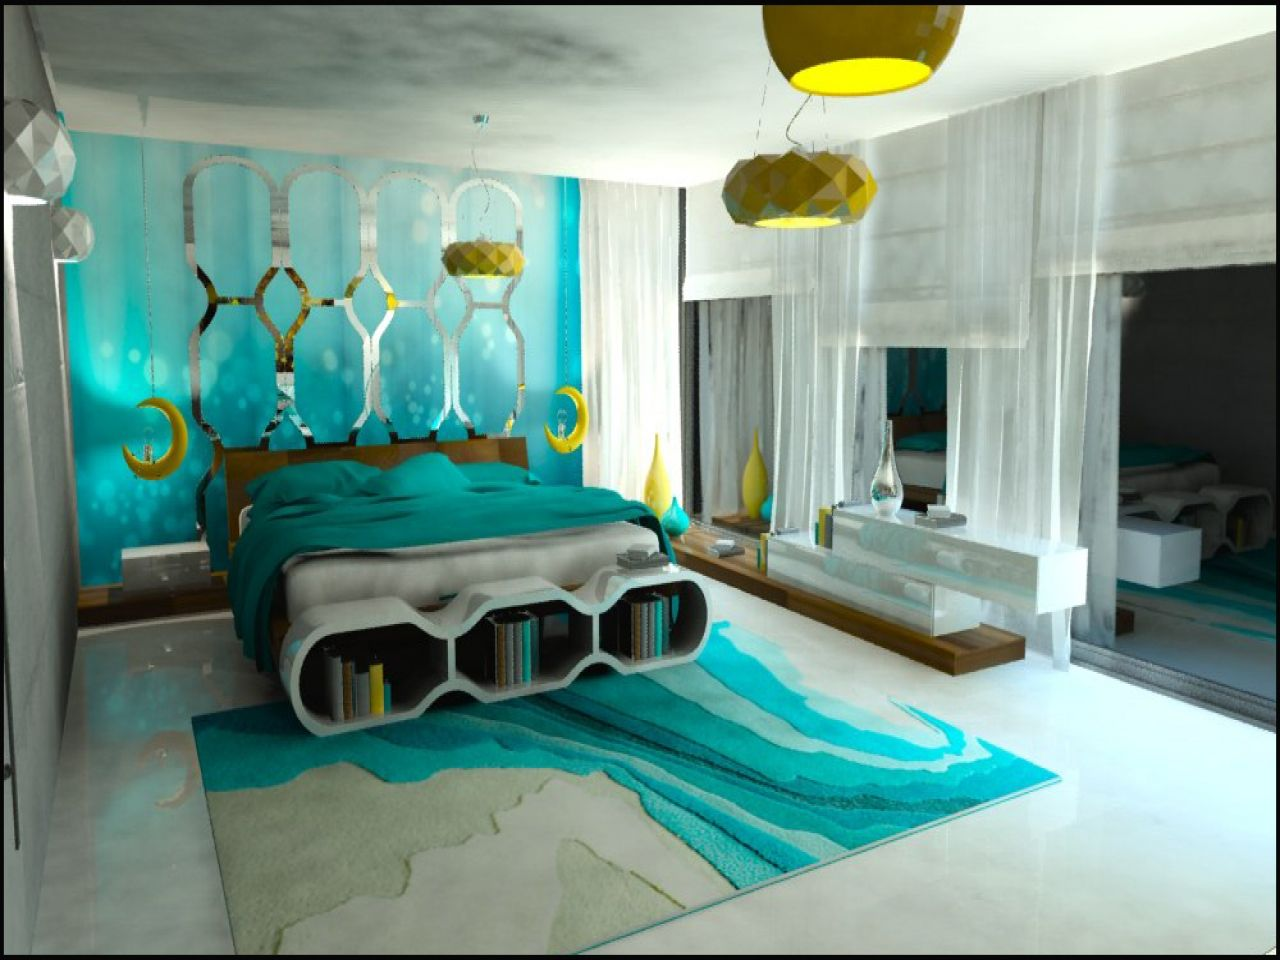 Turquoise Bedroom 17 Ideas For Inspiration Tags Bedroom Turquoise And Beige Turquoise Bedroo Türkisfarbene Schlafzimmer Schlafzimmer Design Teal Wohnzimmer